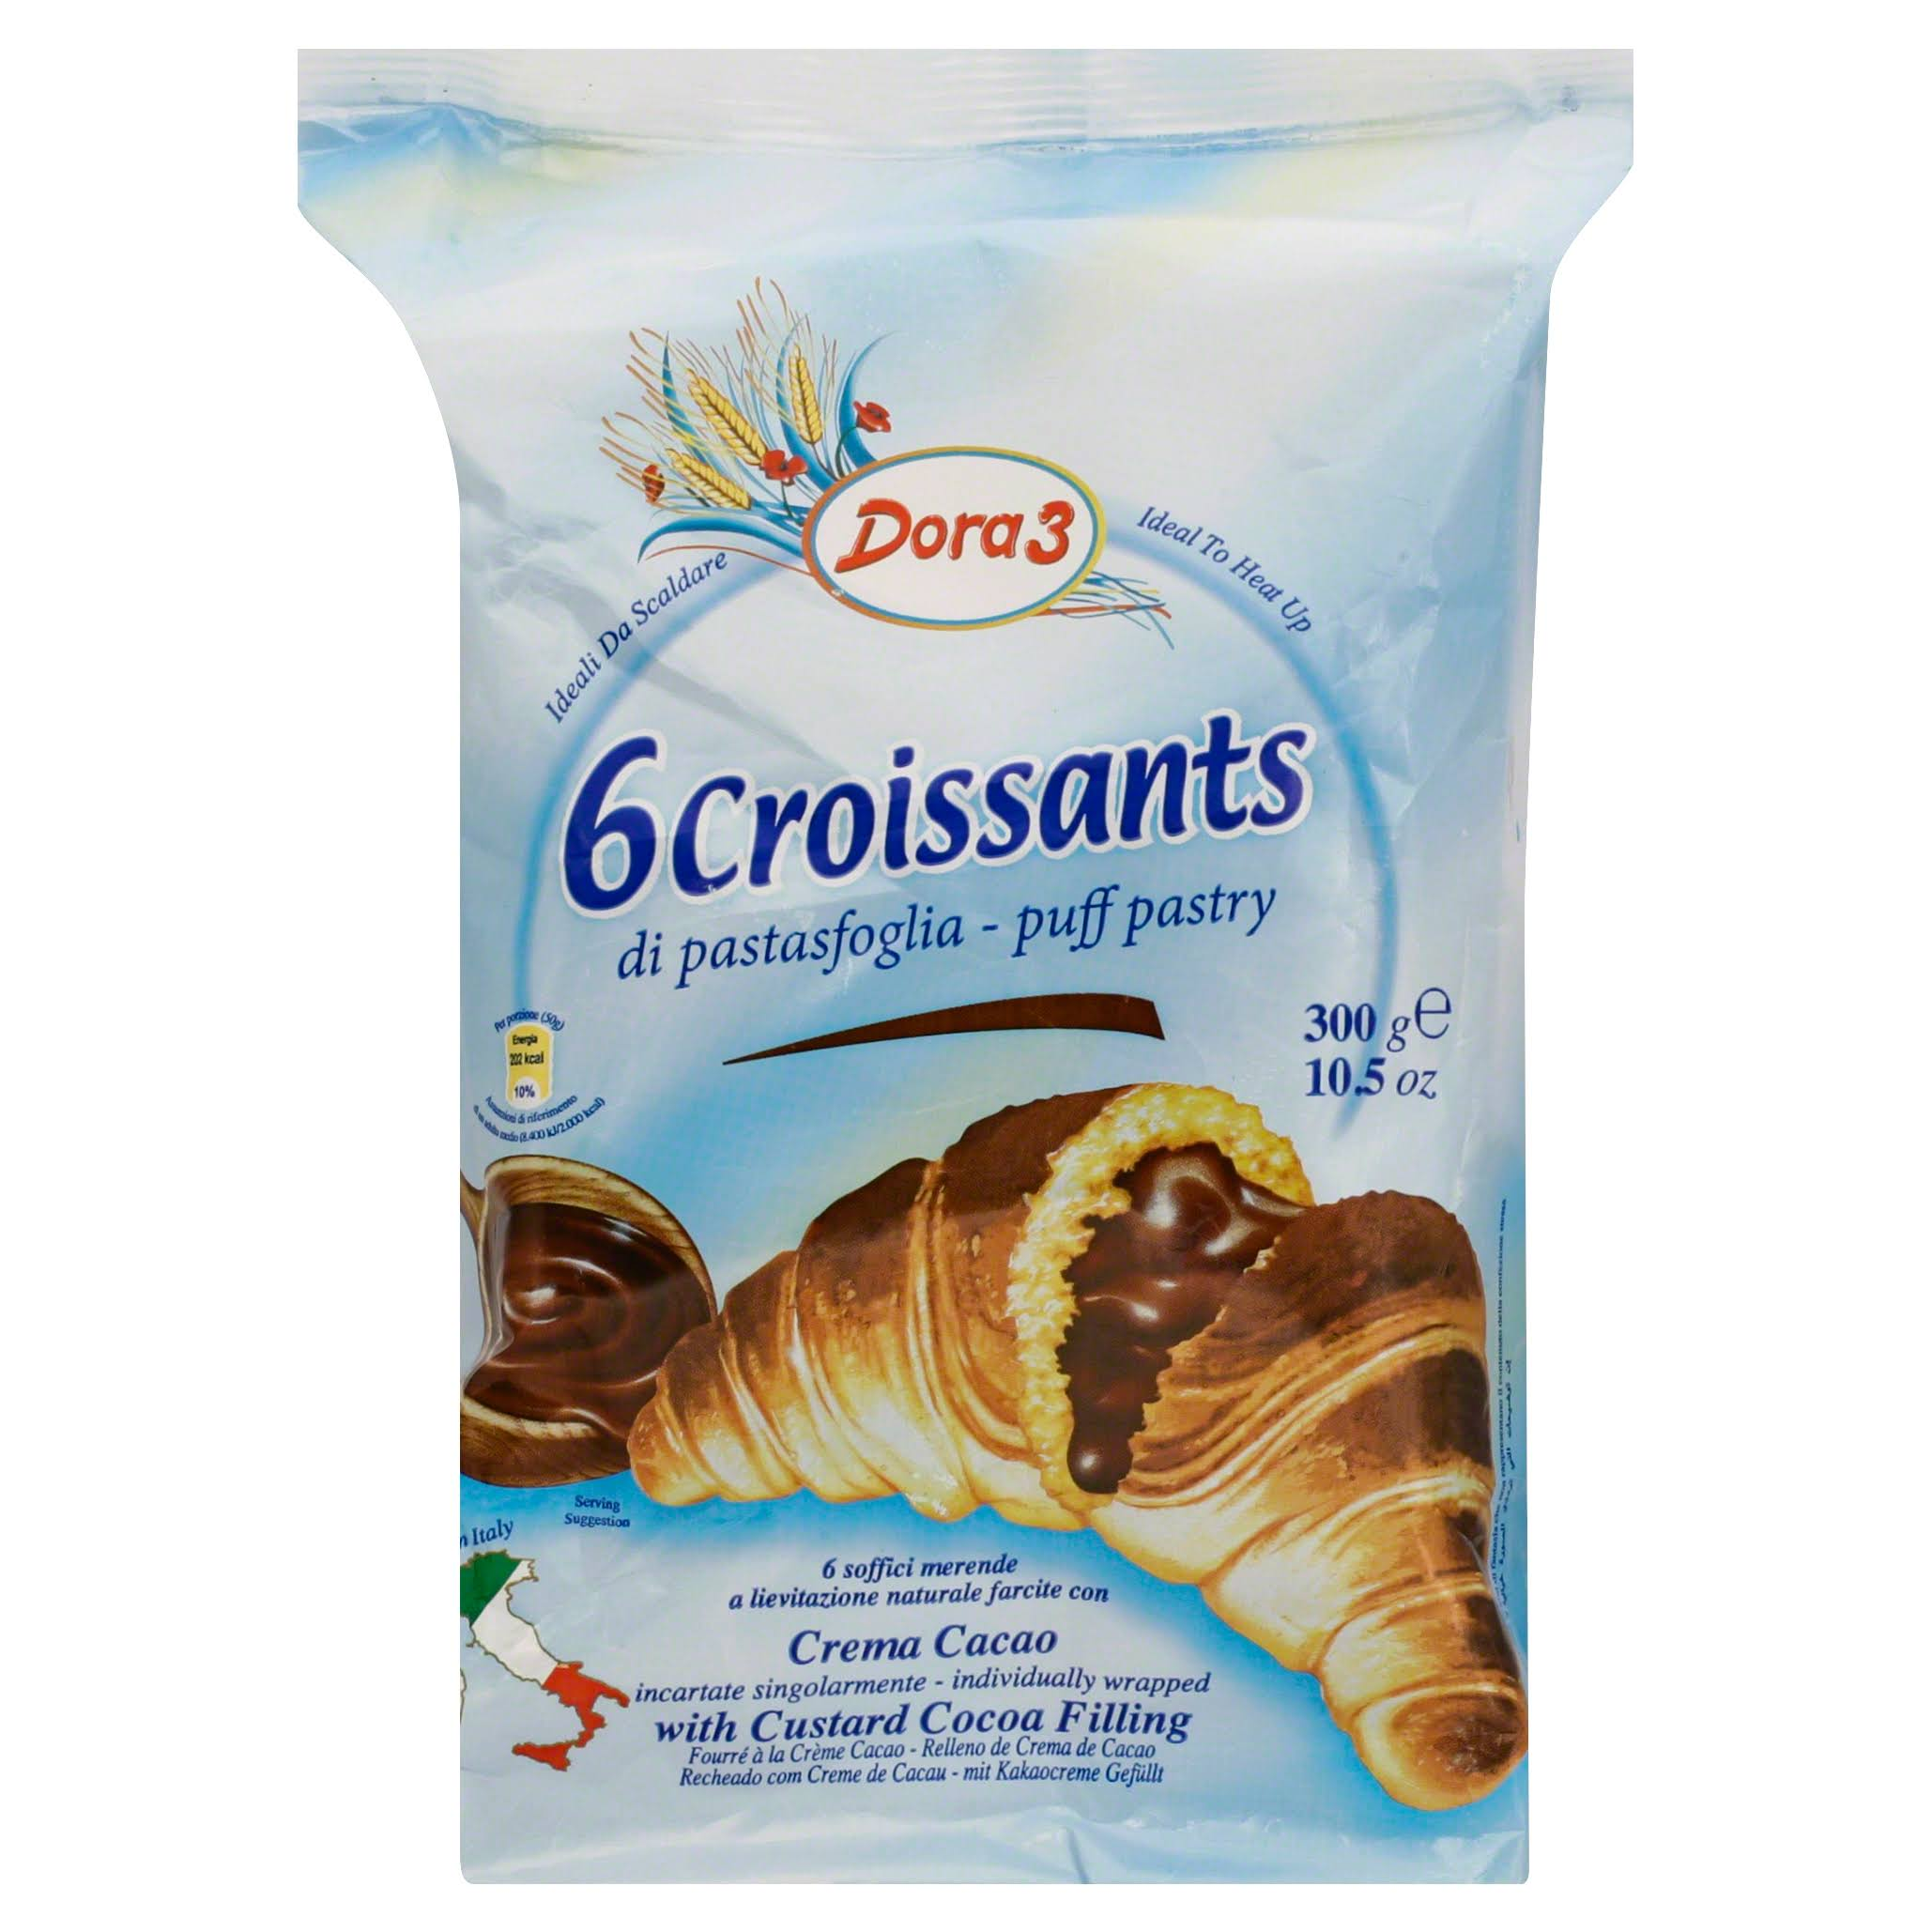 Dora3 Chocolate Cream Filled Croissant - 300g, 6pk